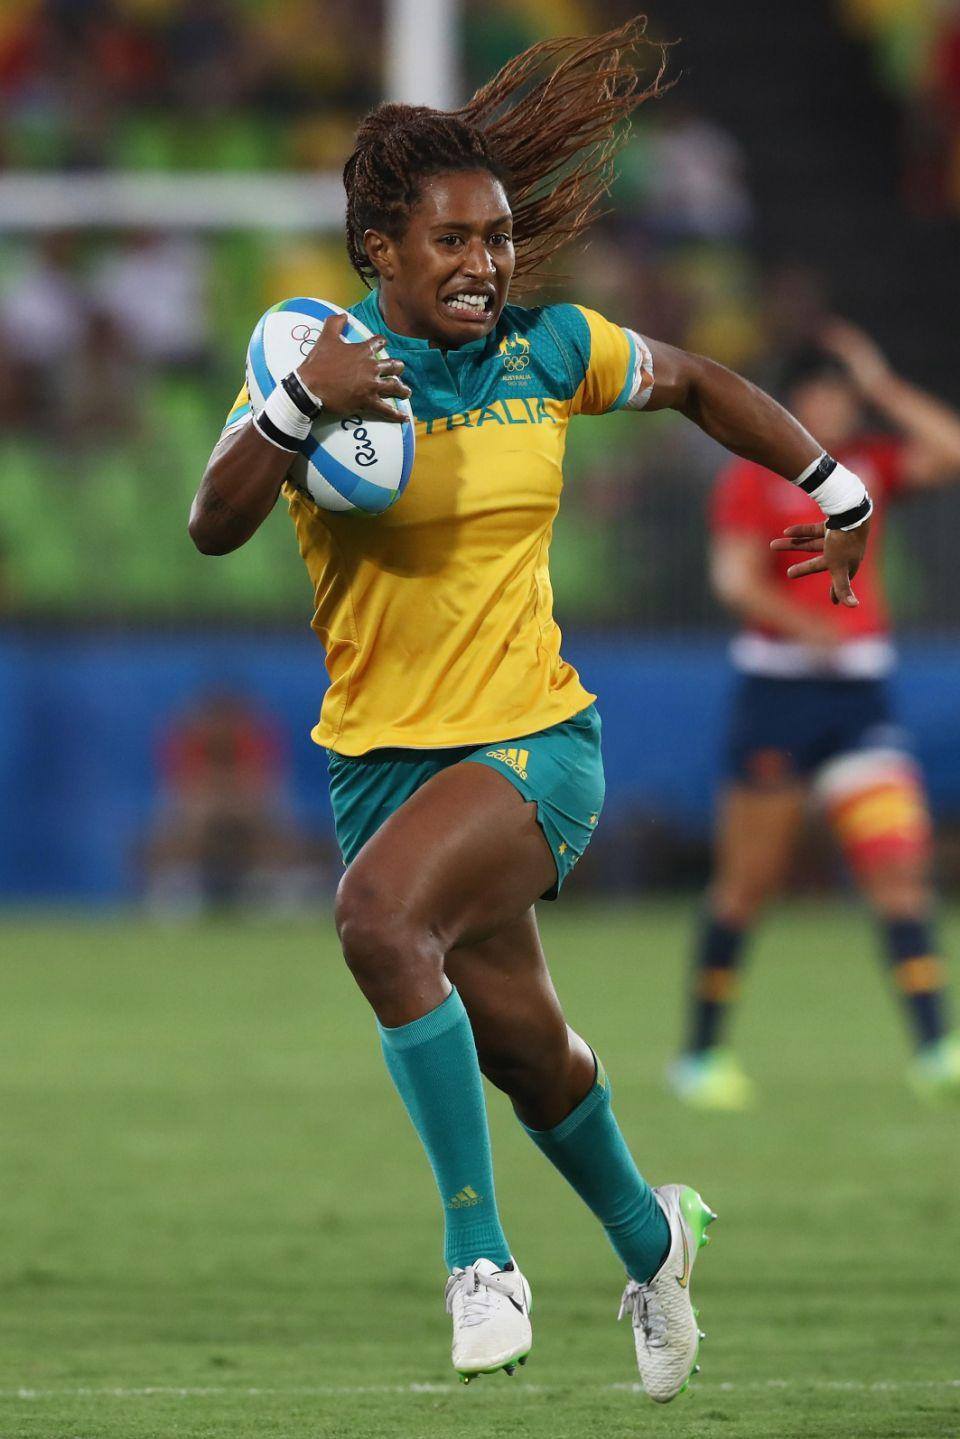 Former sprinter turned rugby star Ellia is now gearing up for the Commonwealth Games. Photo: Getty